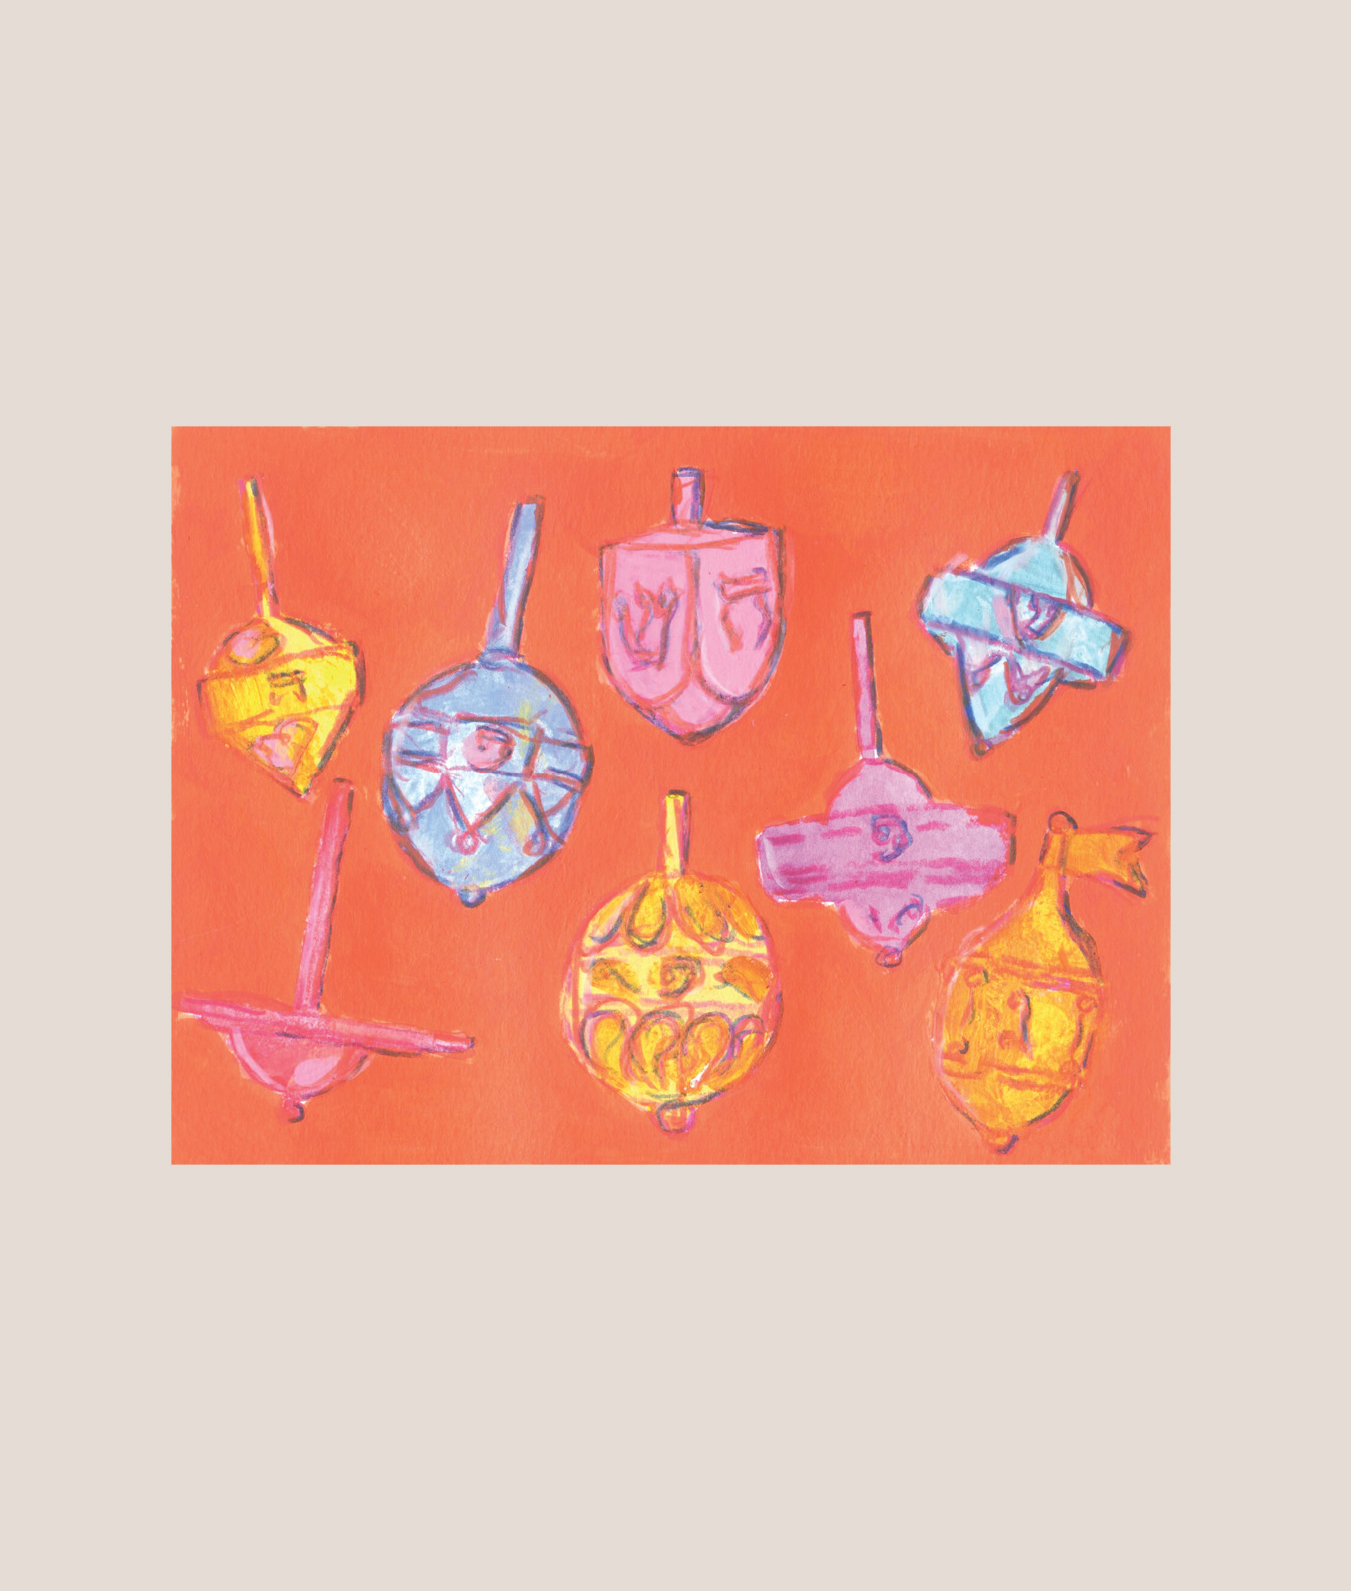 orange card with blue pink yellow dradle illustrations